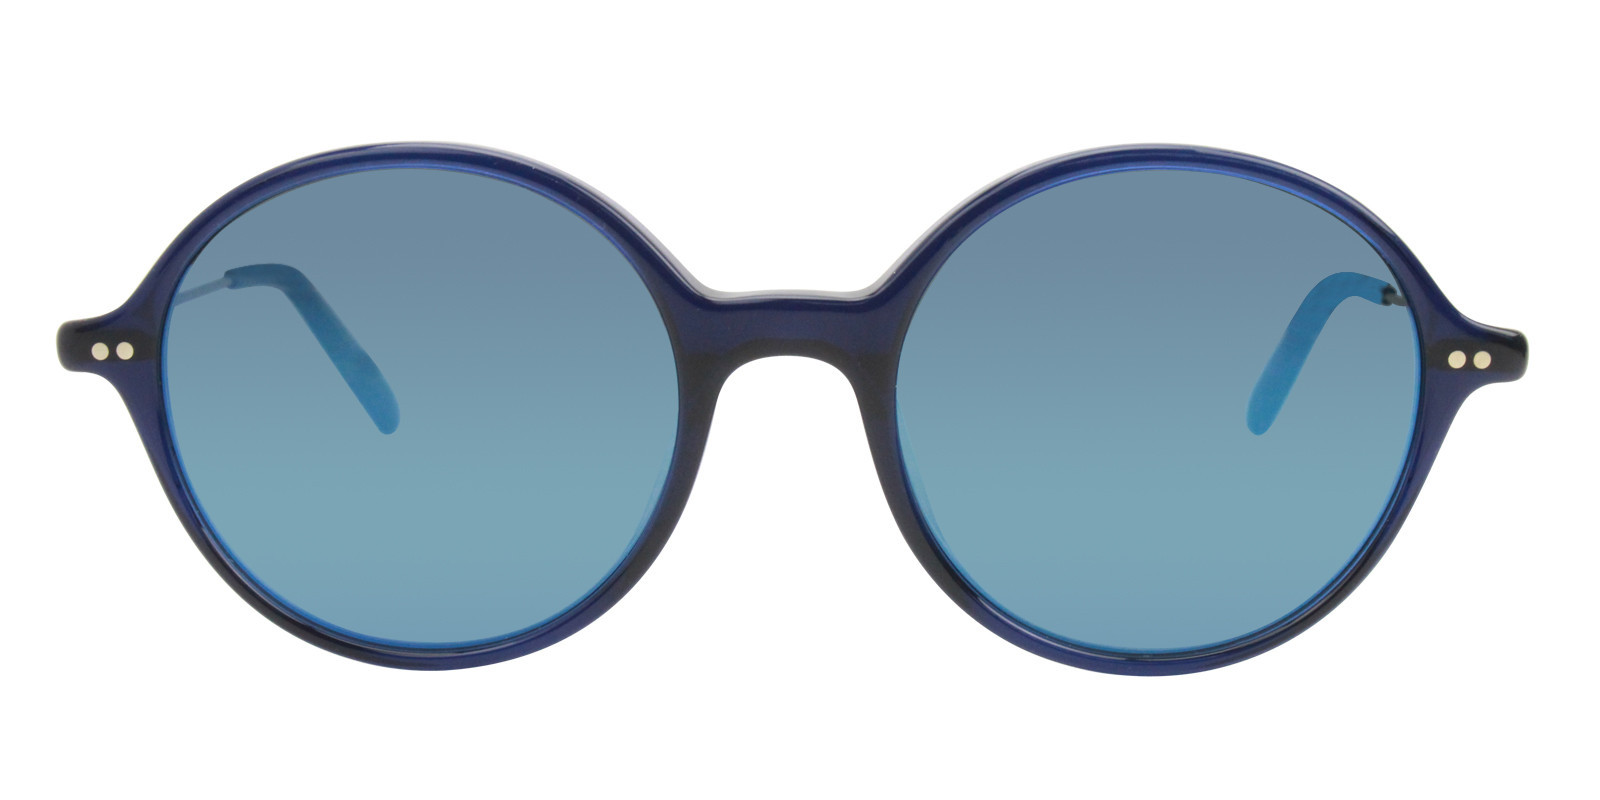 Oliver Peoples Rounded Glasses